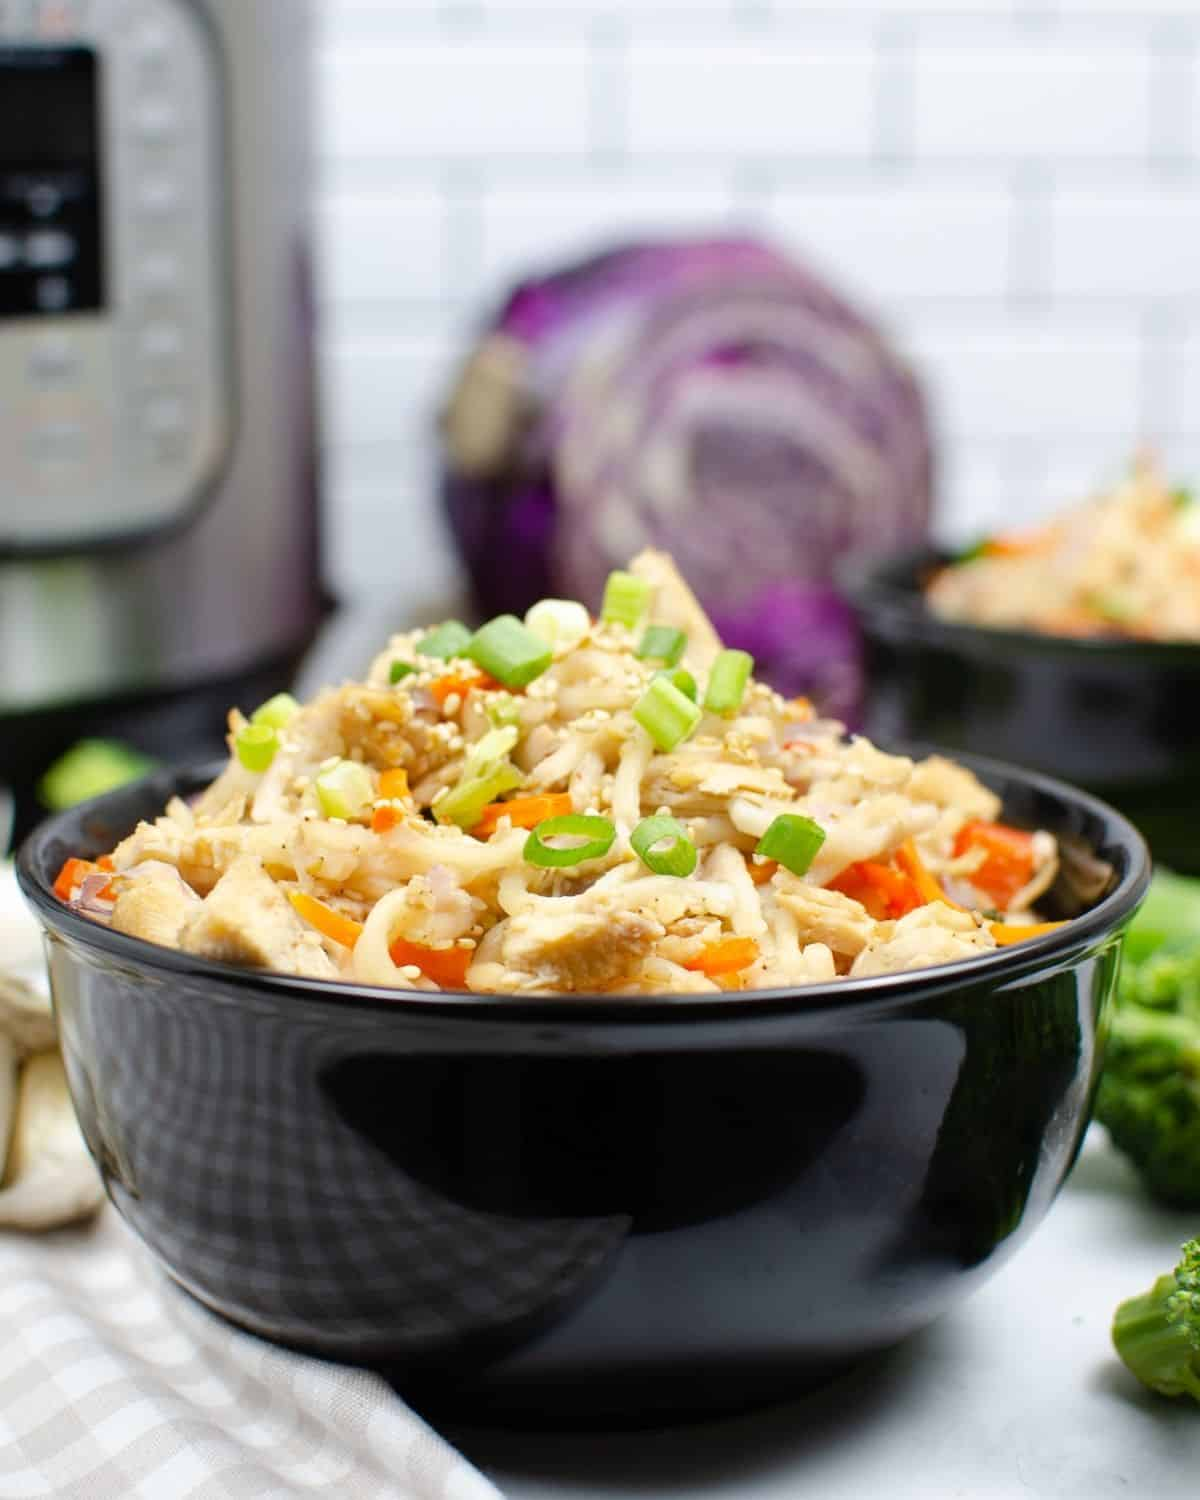 A bowl of noodles and veggies topped with green onions in a black bowl in front of an instant pot.